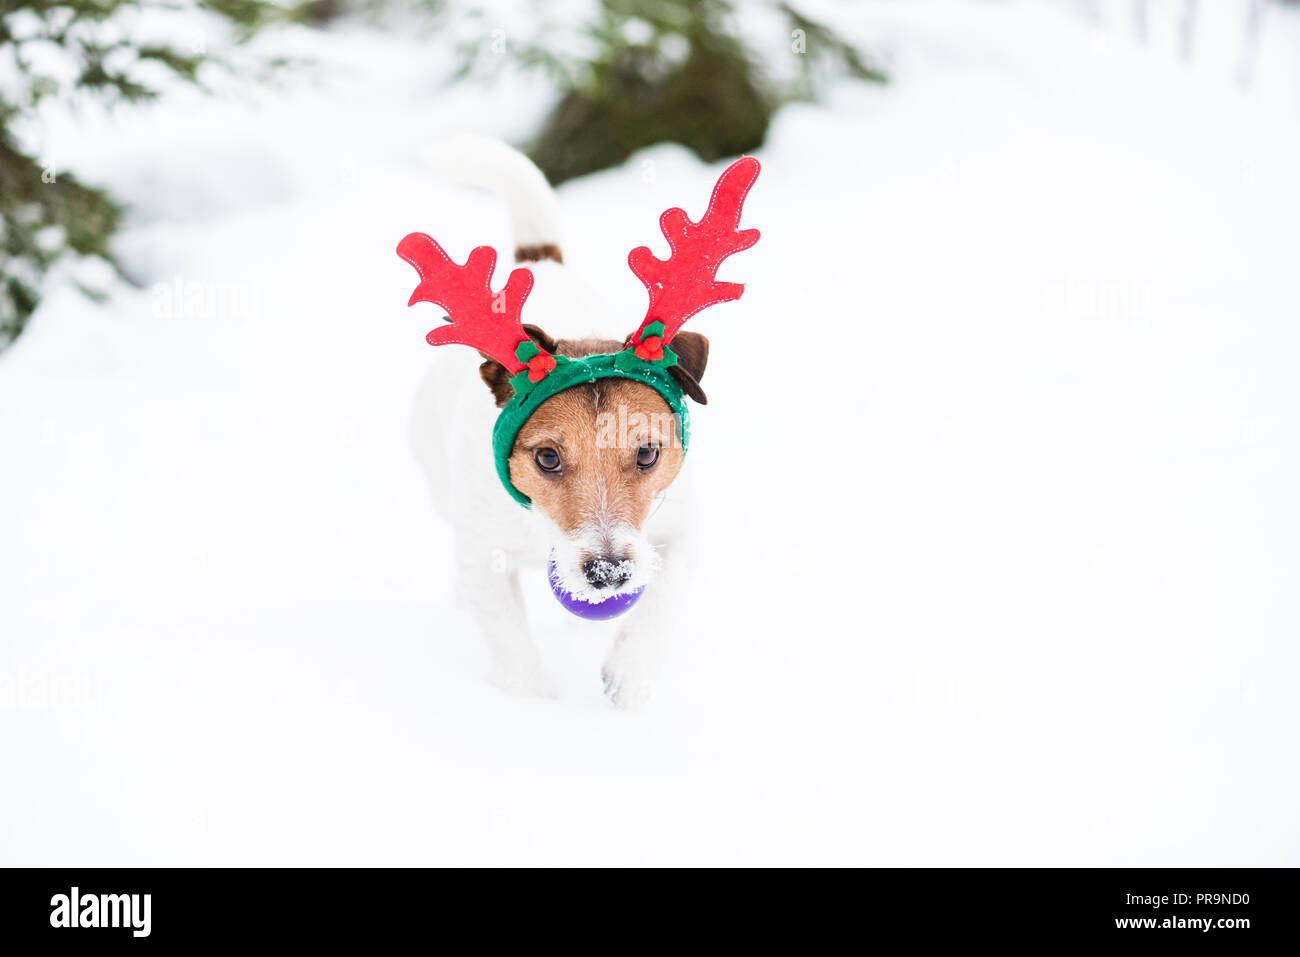 Dog as humorous reindeer fetches Christmas tree ball toy - Stock Image